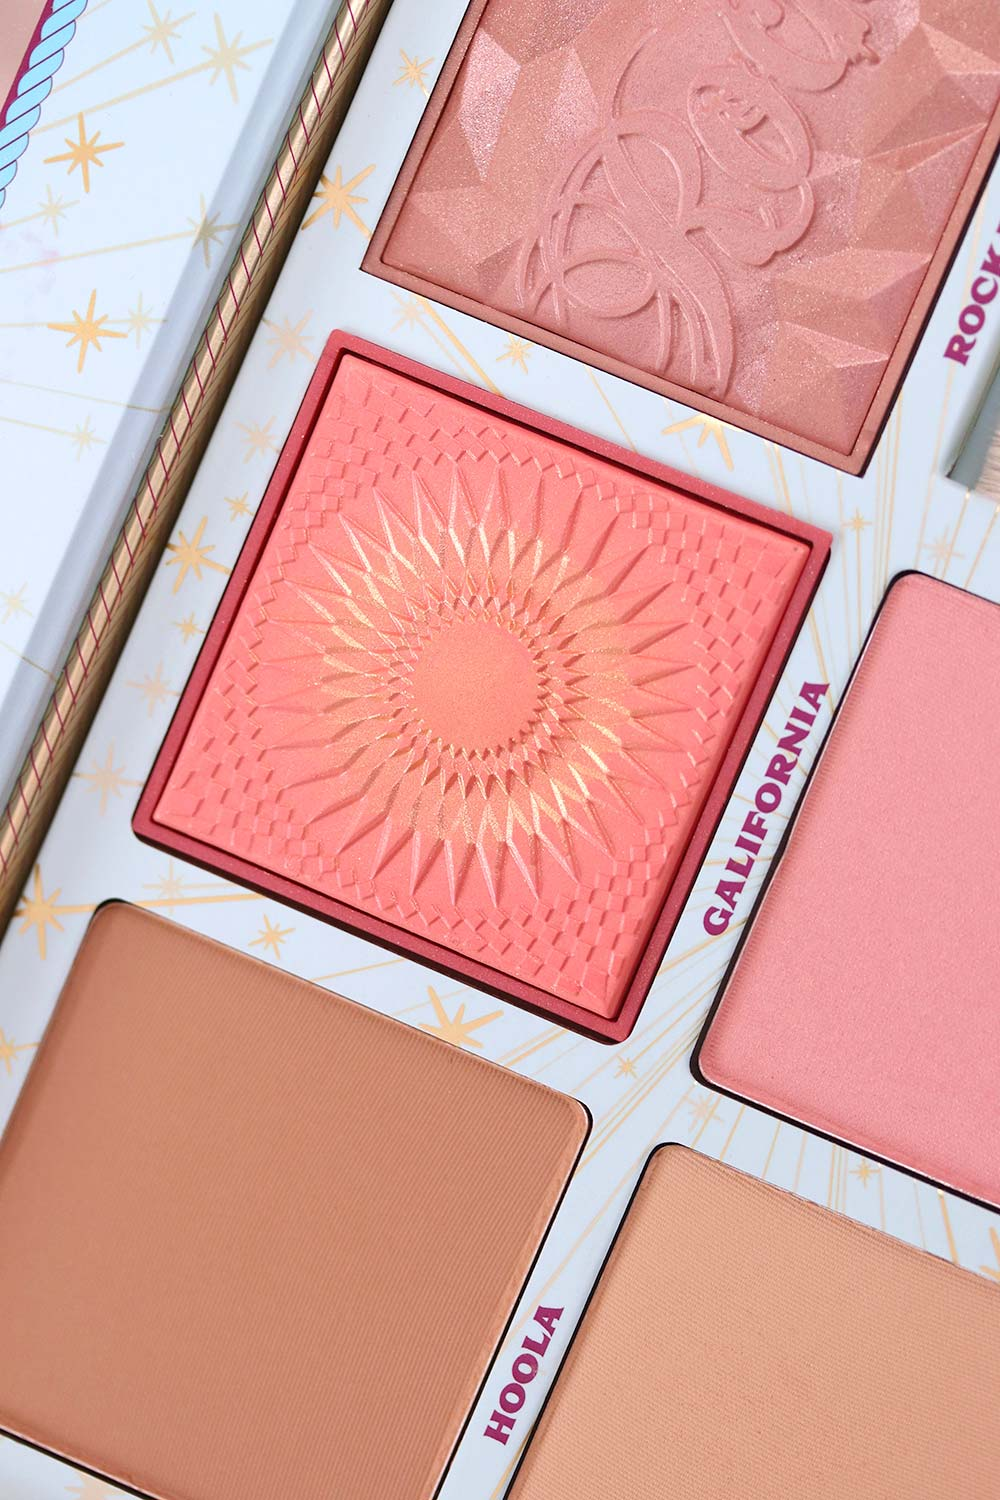 benefit cheek parade blush kit closeup 1